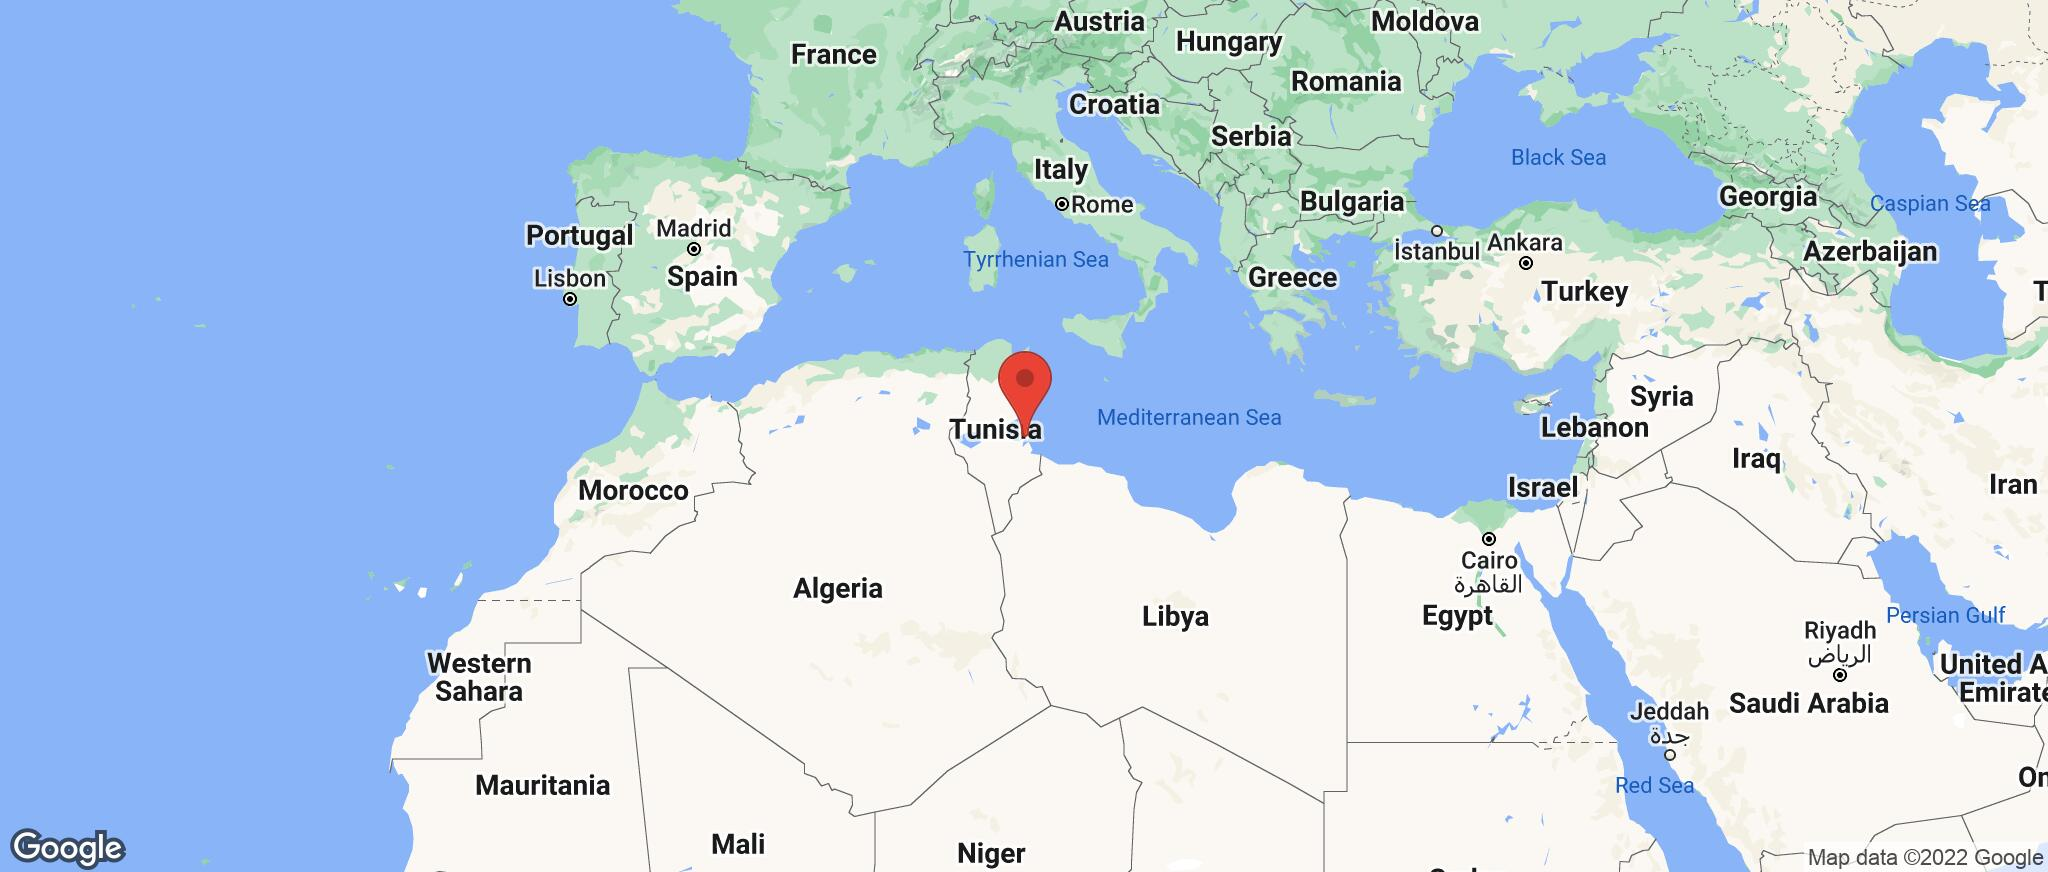 Map showing the location of Djerba